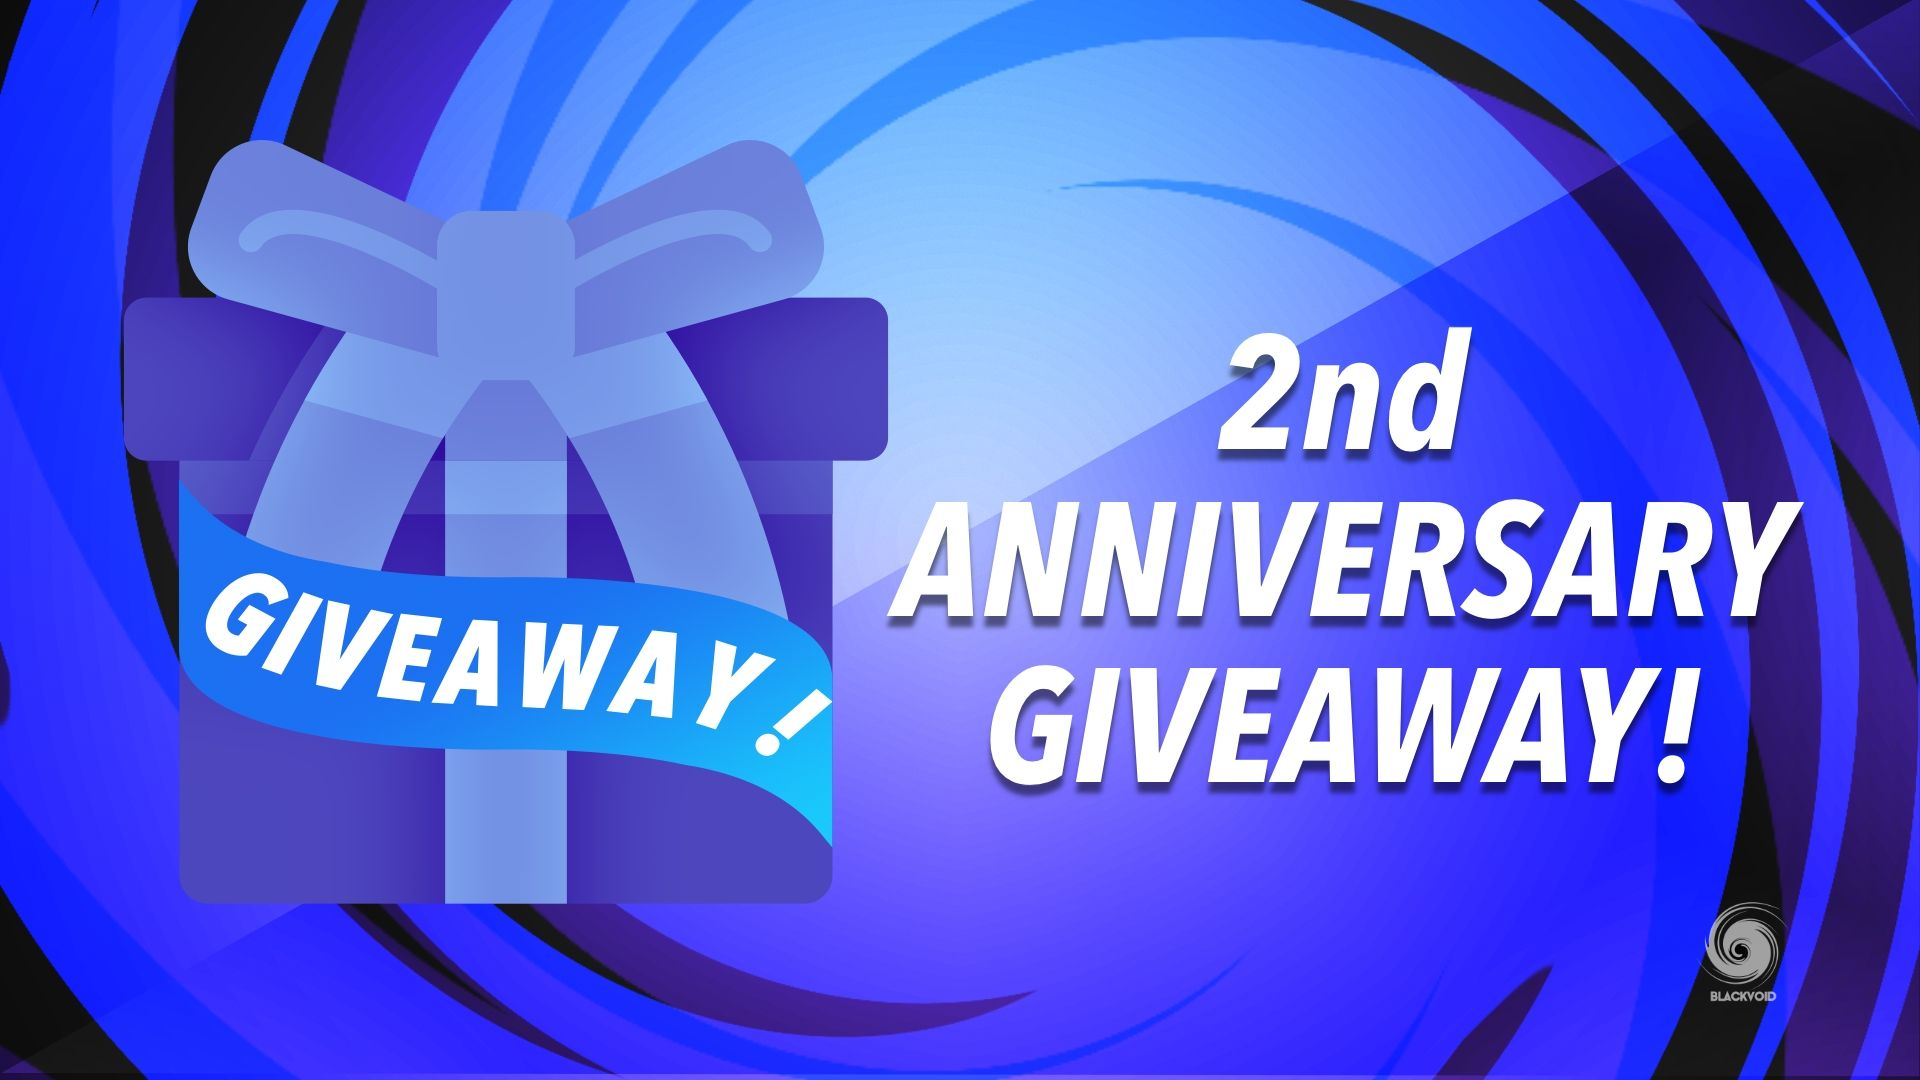 Blackvoid's 2nd-anniversary giveaway!